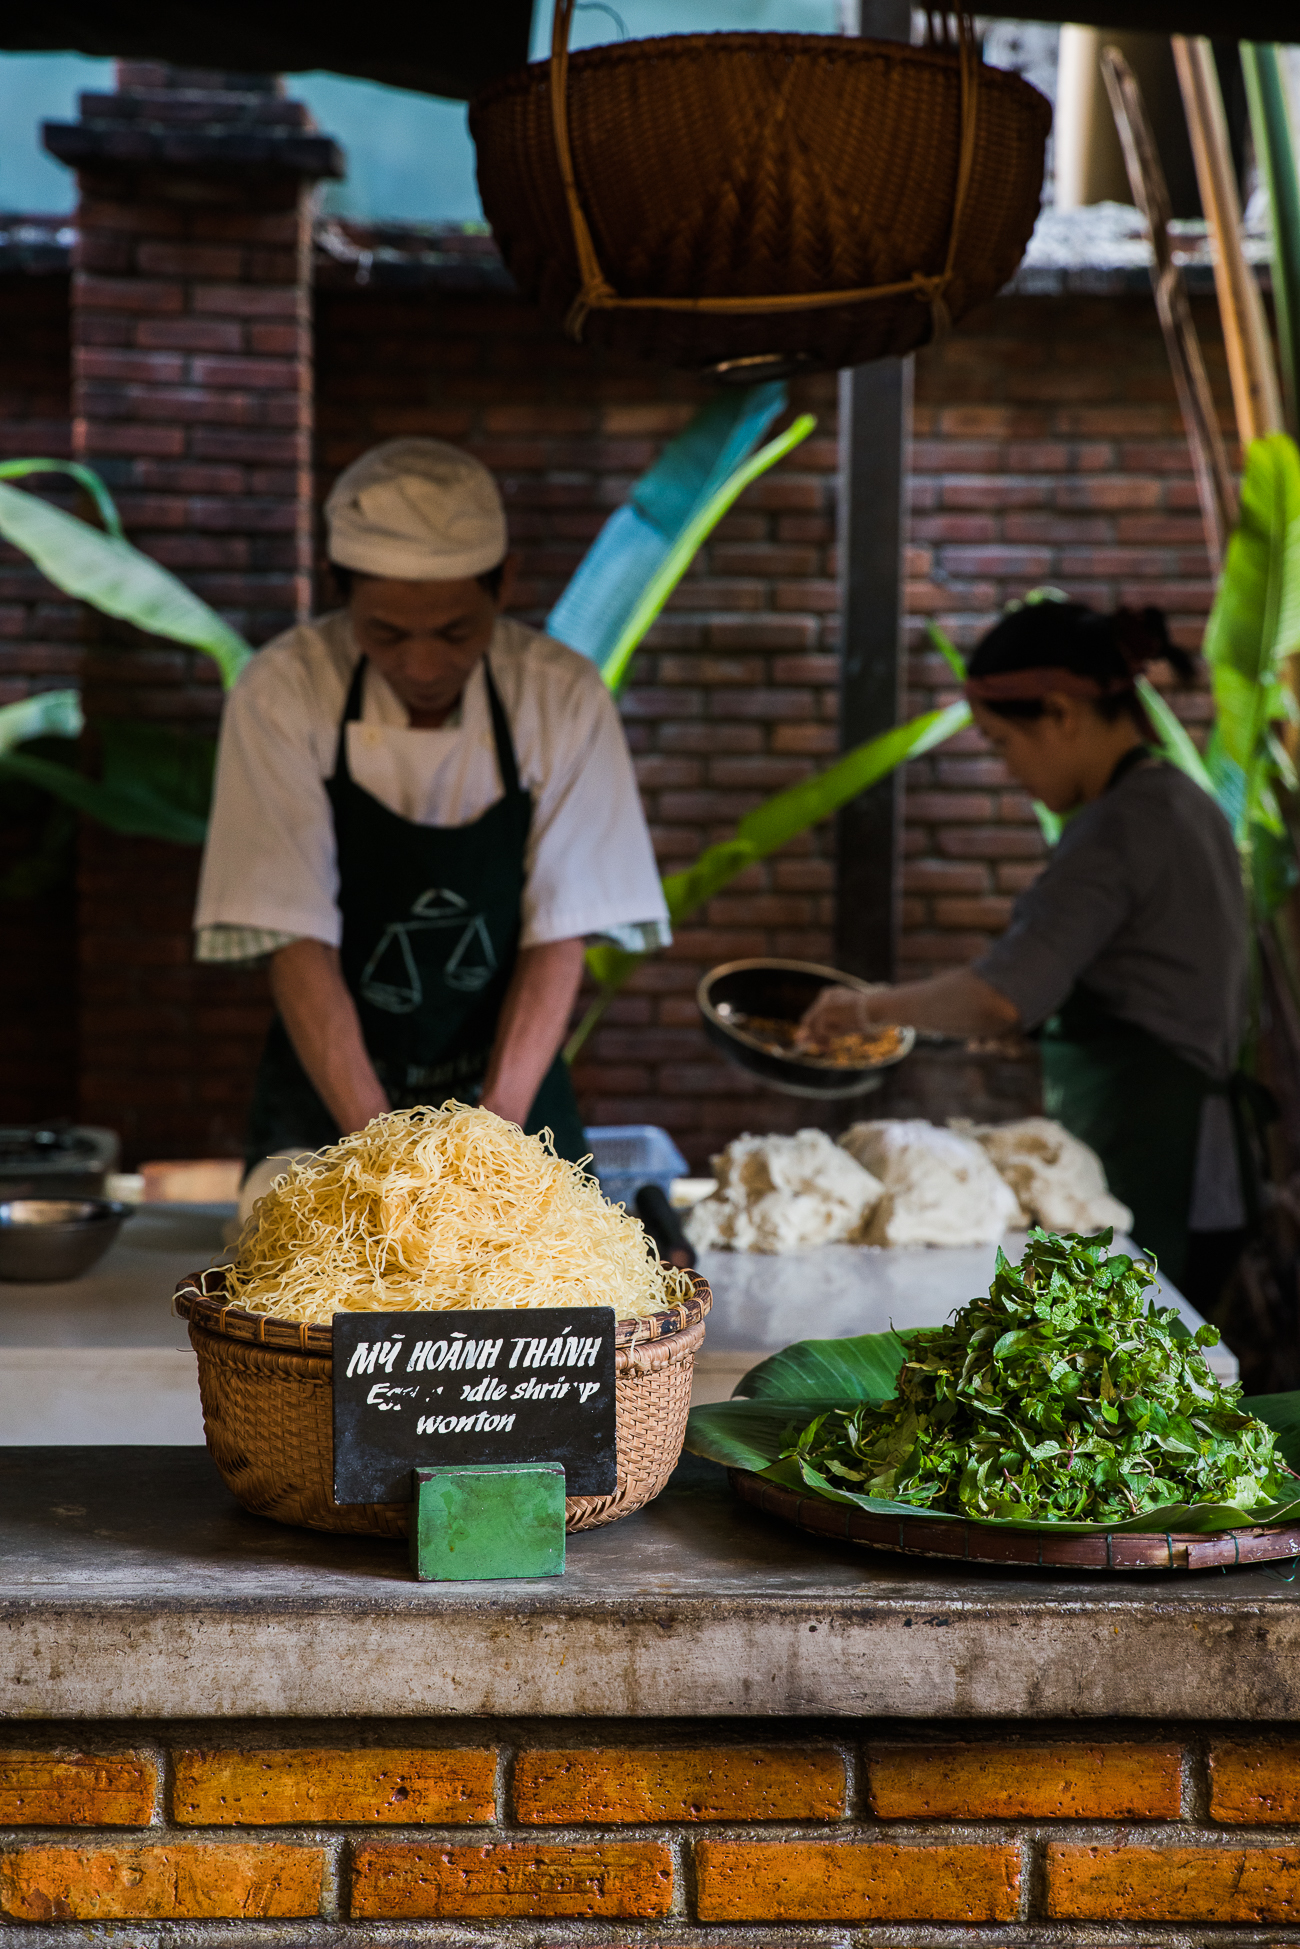 Vy's Market Restaurant - Hoi An, Vietnam / See and Savour